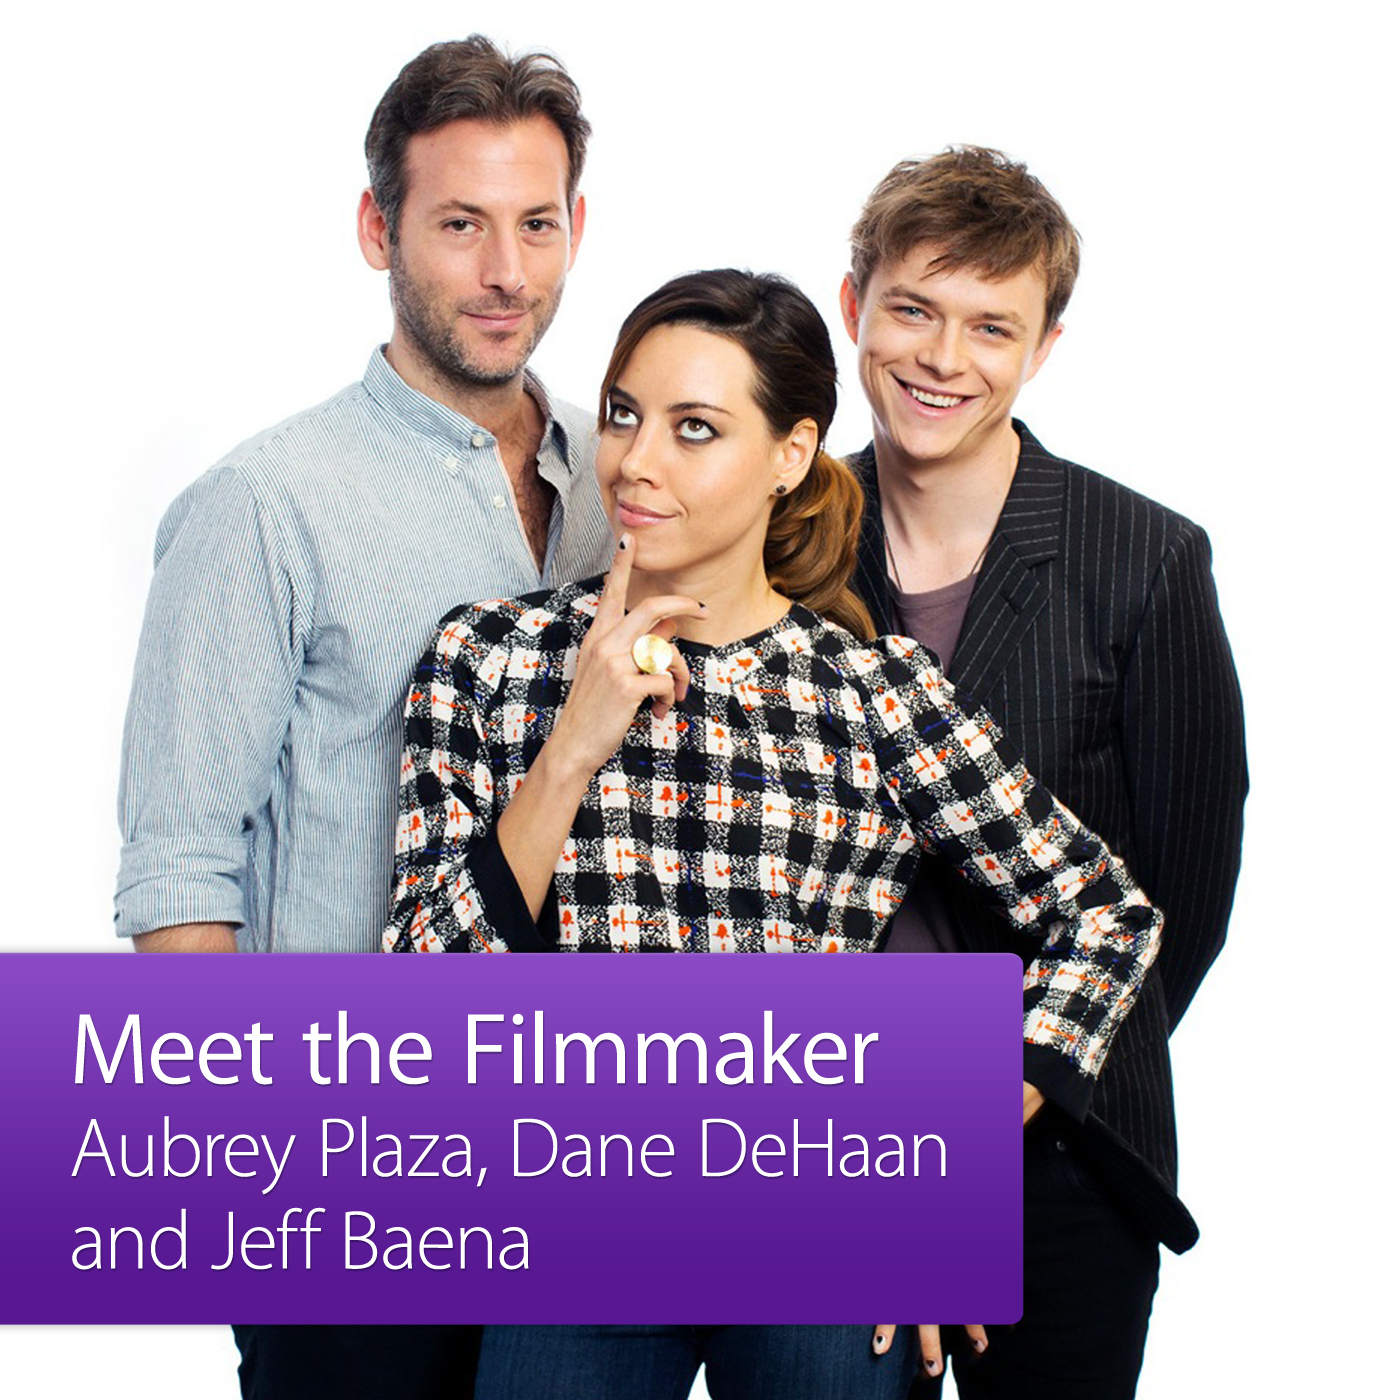 Jeff Baena, Aubrey Plaza and Dane DeHaan: Meet the Filmmaker